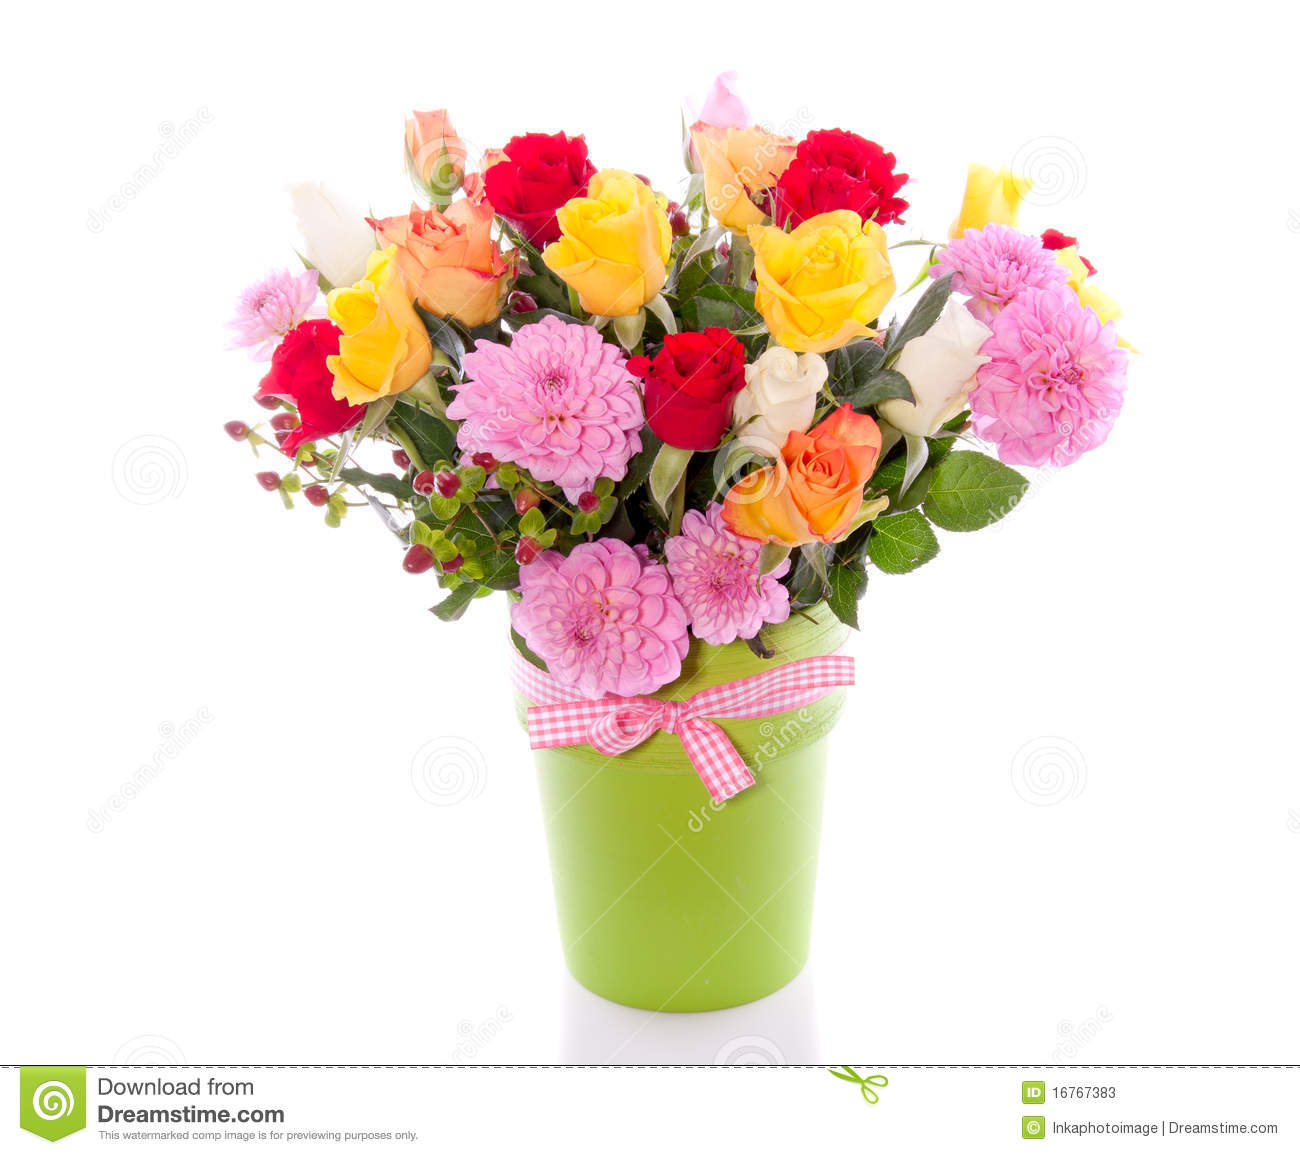 Log cabin on a lake royalty free stock photography image 7866317 - Roses And Dahlia Bouquet Stock Photos